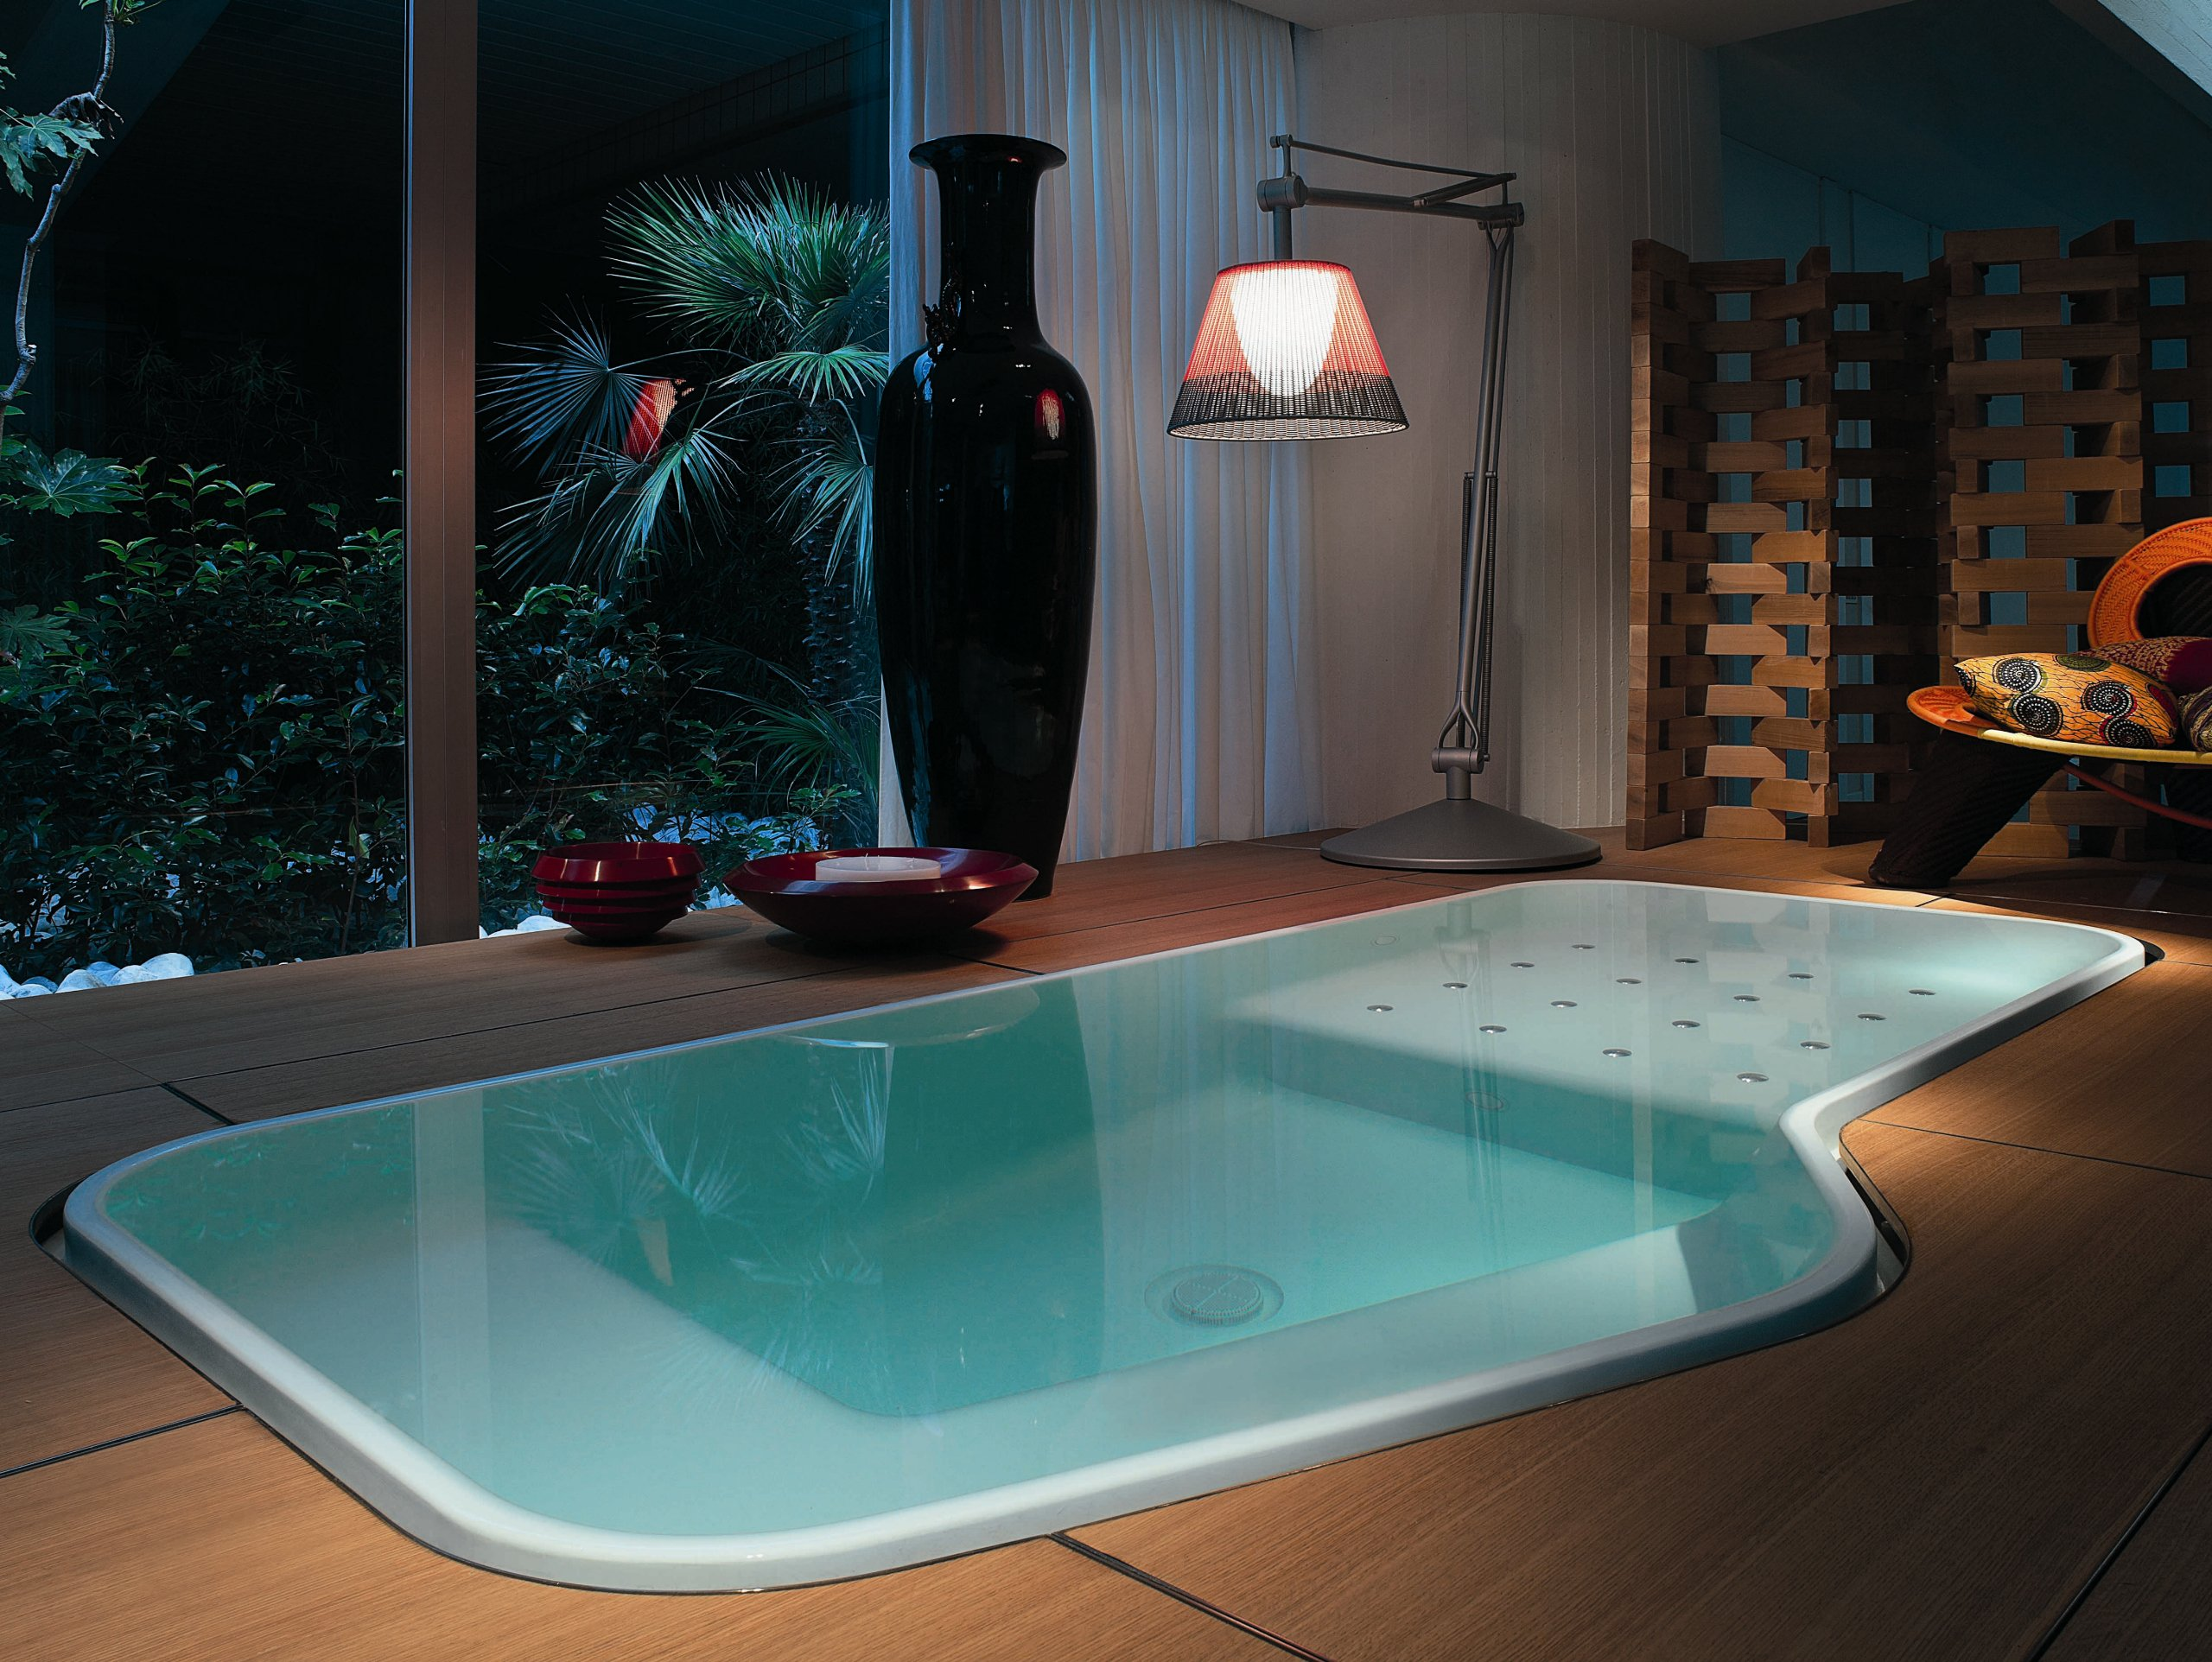 Overflow hot tub 4 seats pool faraway by kos by zucchetti for Designer hot tubs